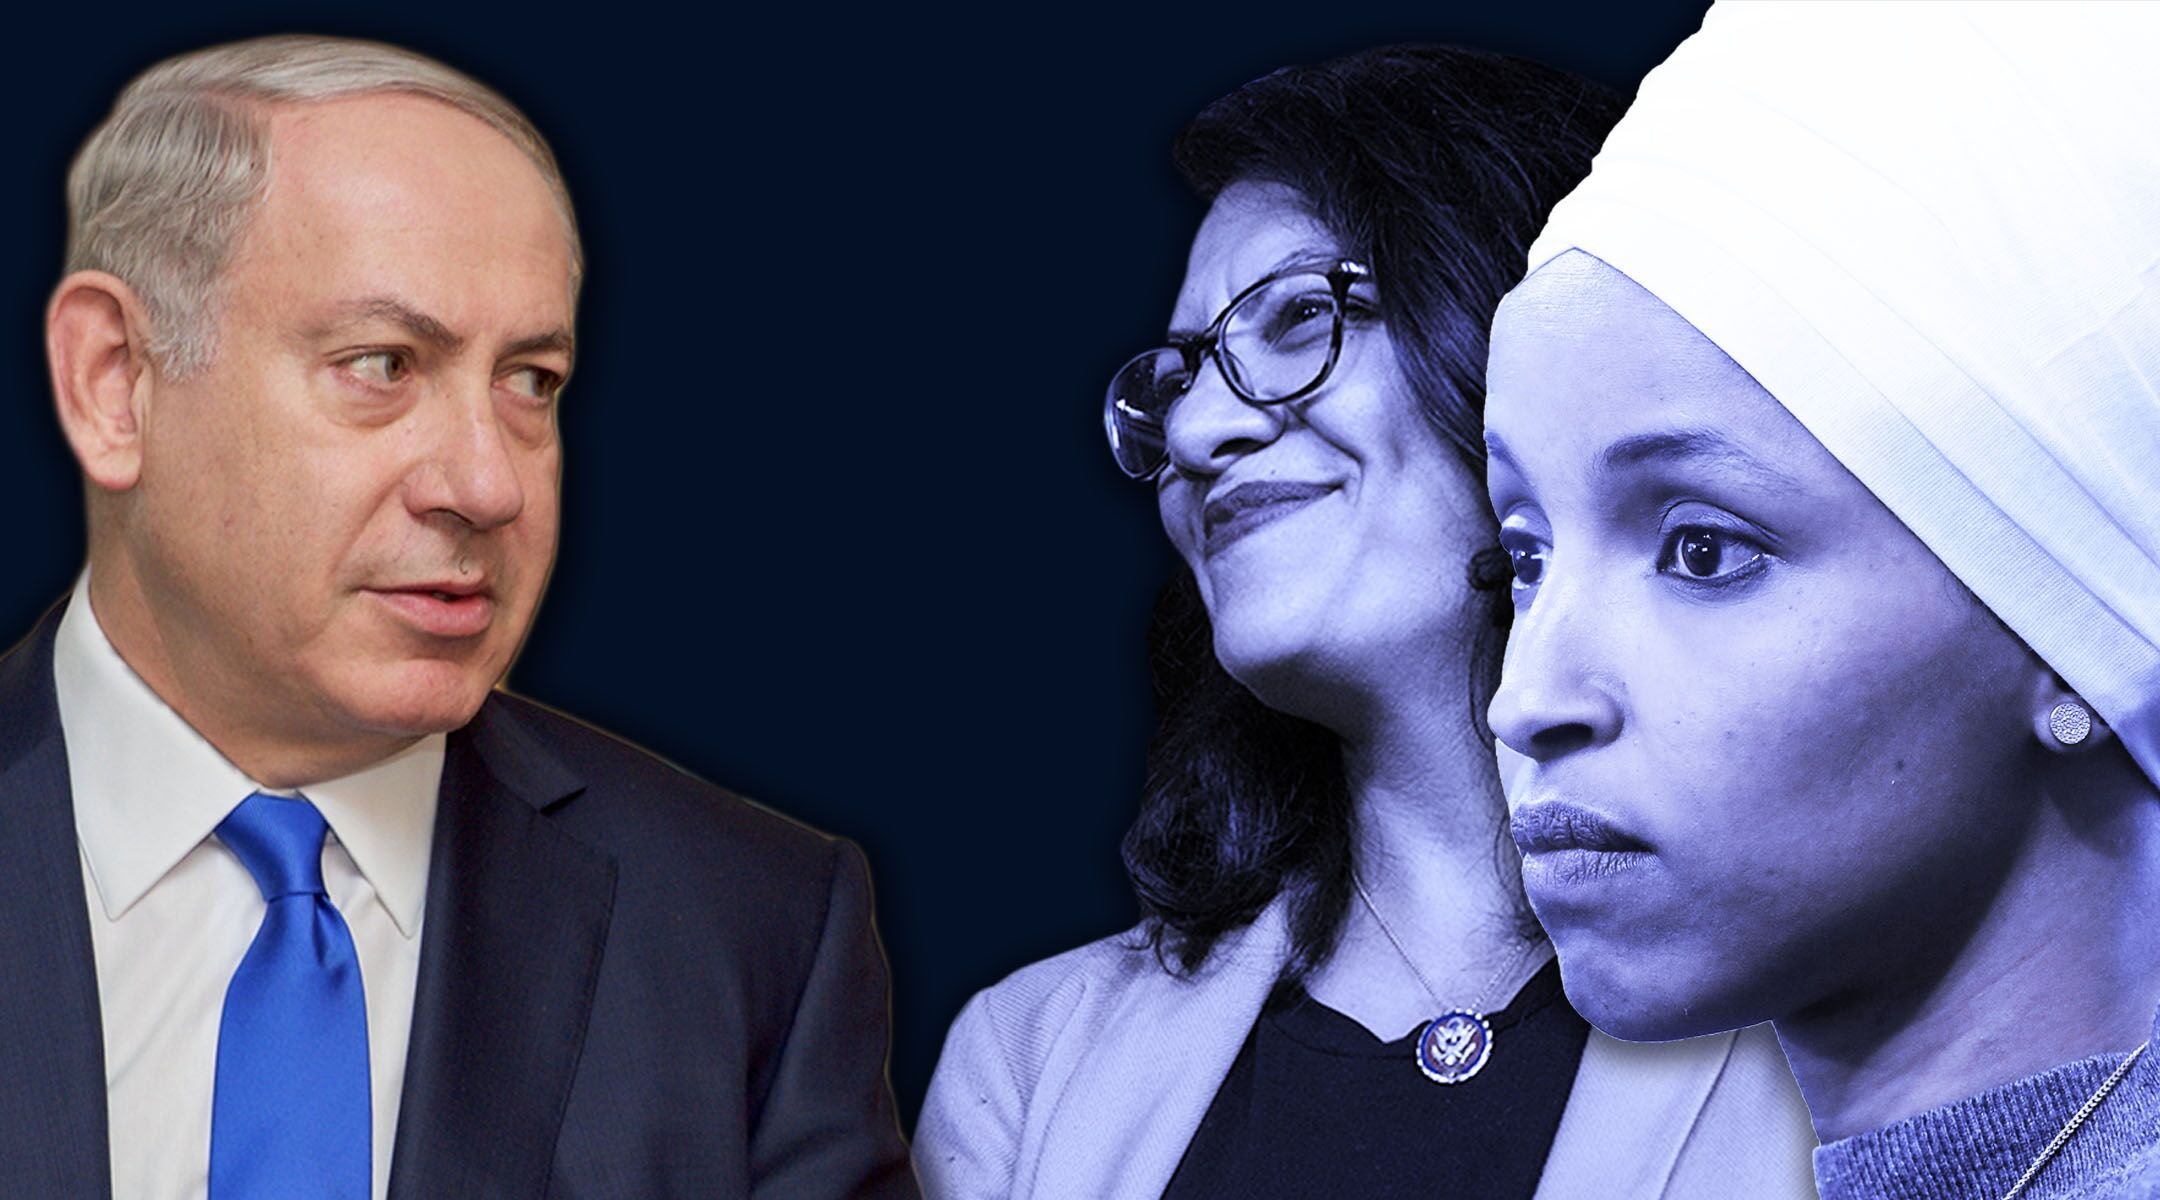 """Israeli Prime Minister Benjamin Netanyahu, left, said Reps. Rashida Tlaib, center, and Ilhan Omar, right, provided an itinerary that """"revealed that they planned a visit whose sole objective is to strengthen the boycott against us and deny Israel's legitimacy."""" (Photos/Getty Images; Collage/JTA-Laura E. Adkins)"""